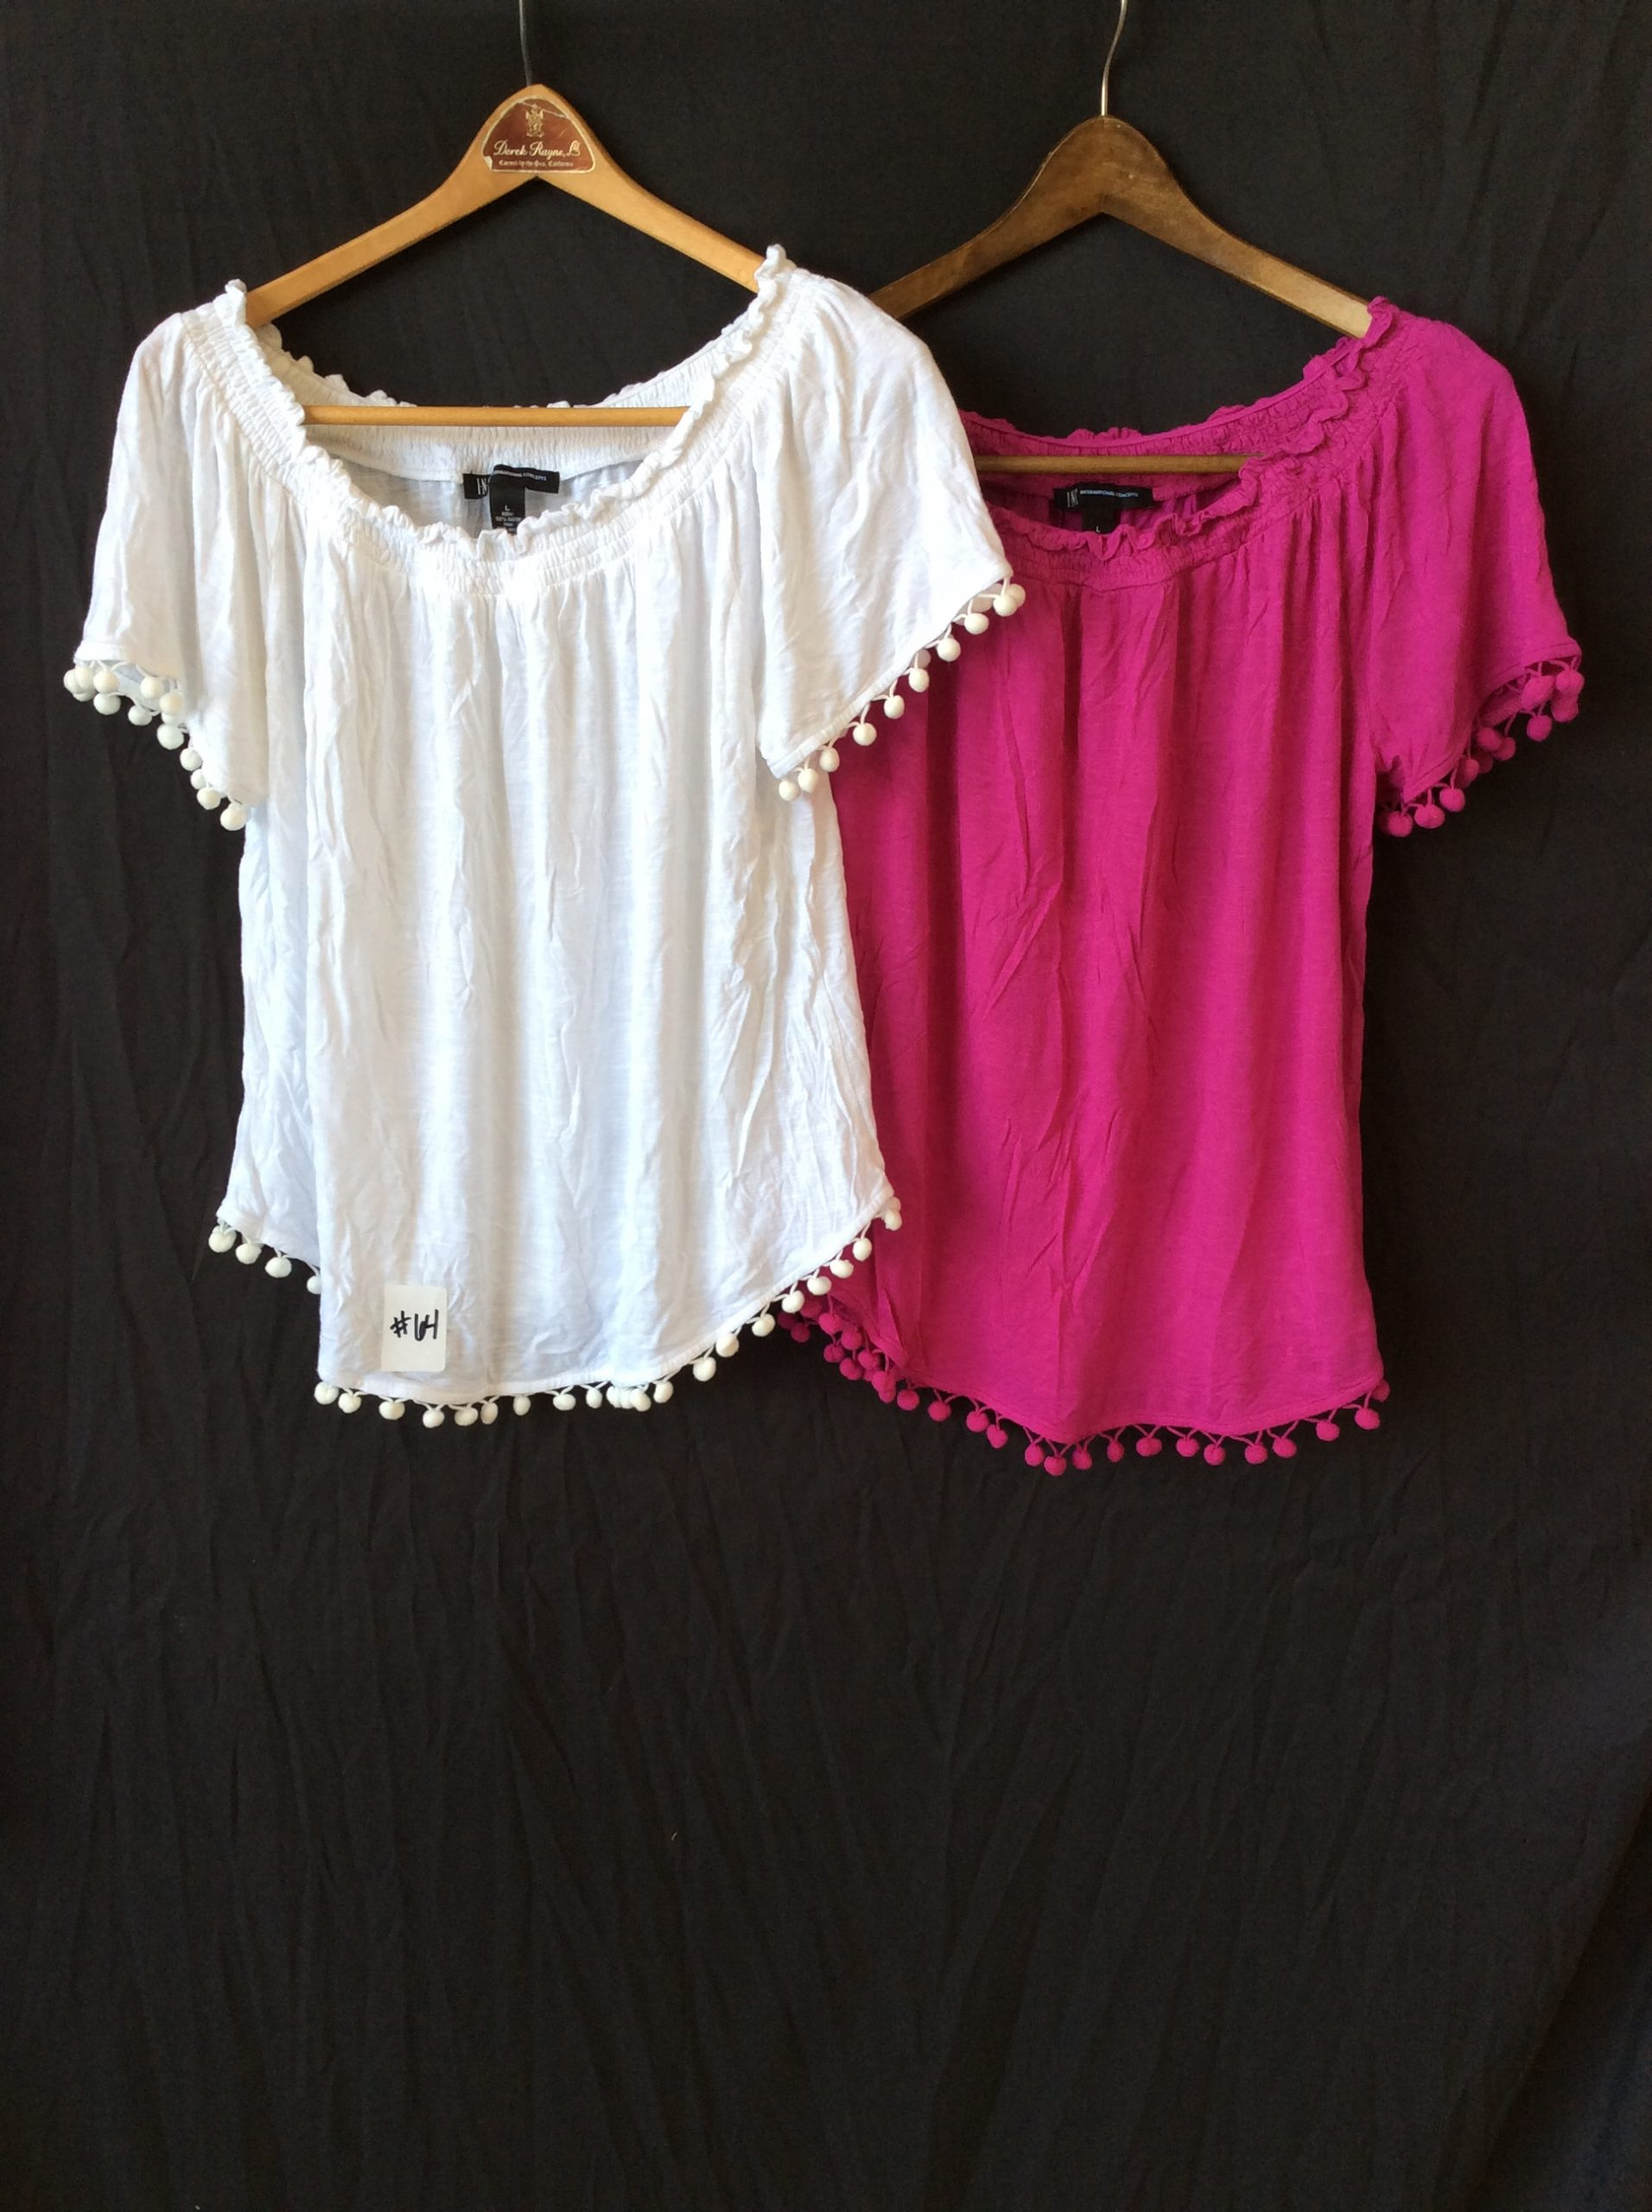 Women's (2 pack) pink and white peasant tops, size large